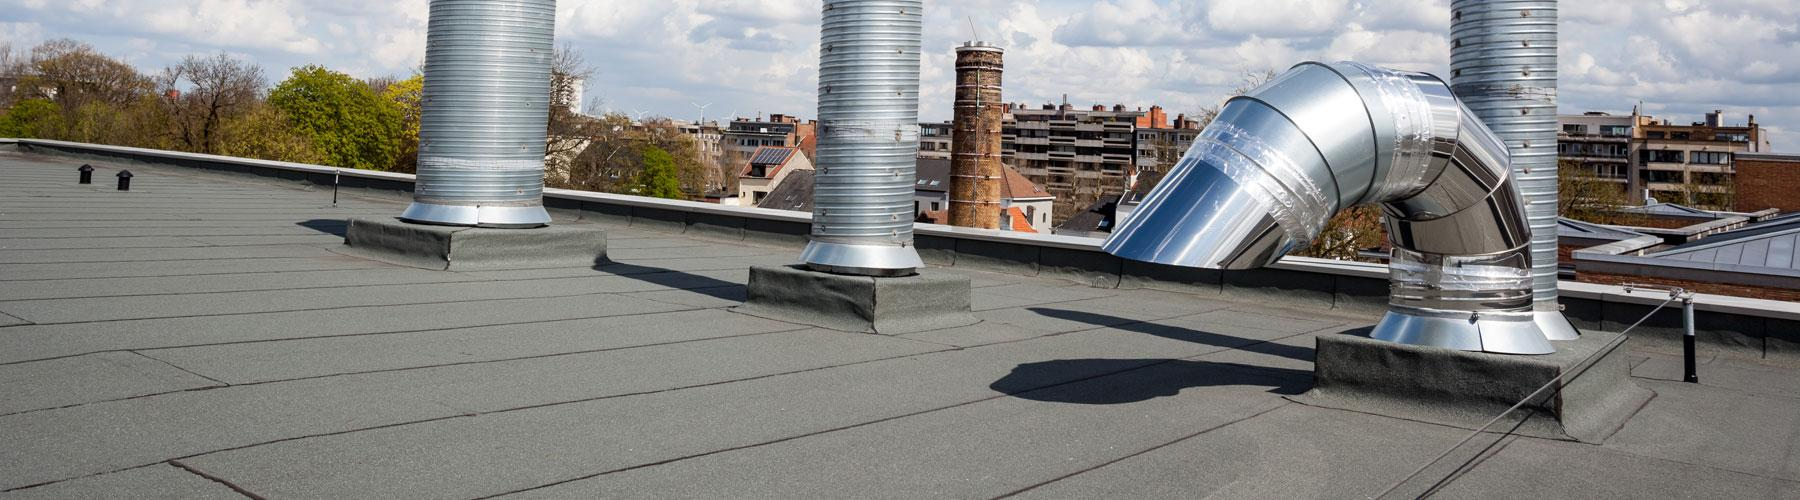 Roofreplacement